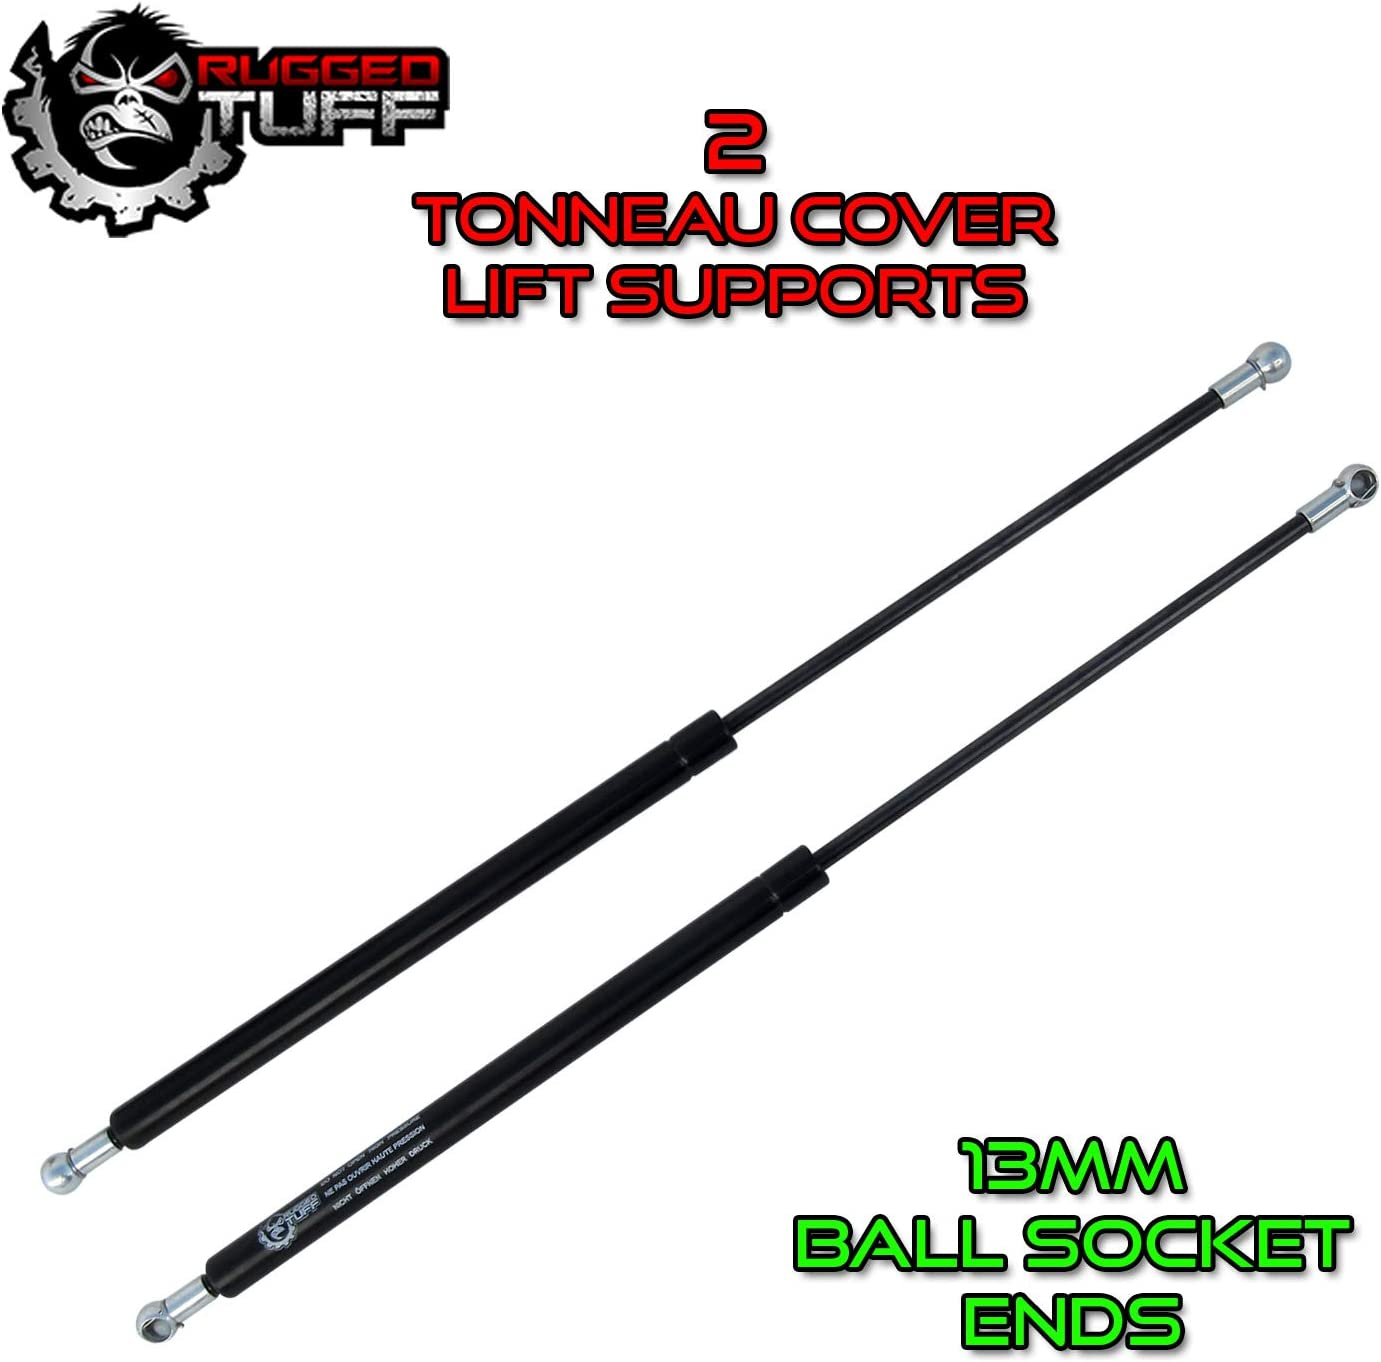 Rugged TUFF Universal Lift Supports Tonneau Window Camper Lid 13mm Ball Socket Ends Force 85 Lbs 26.3 Extended Length Assist Struts Shocks Springs Dampers RT311012 PM2047 4567 SE1024M80BL Qty 2